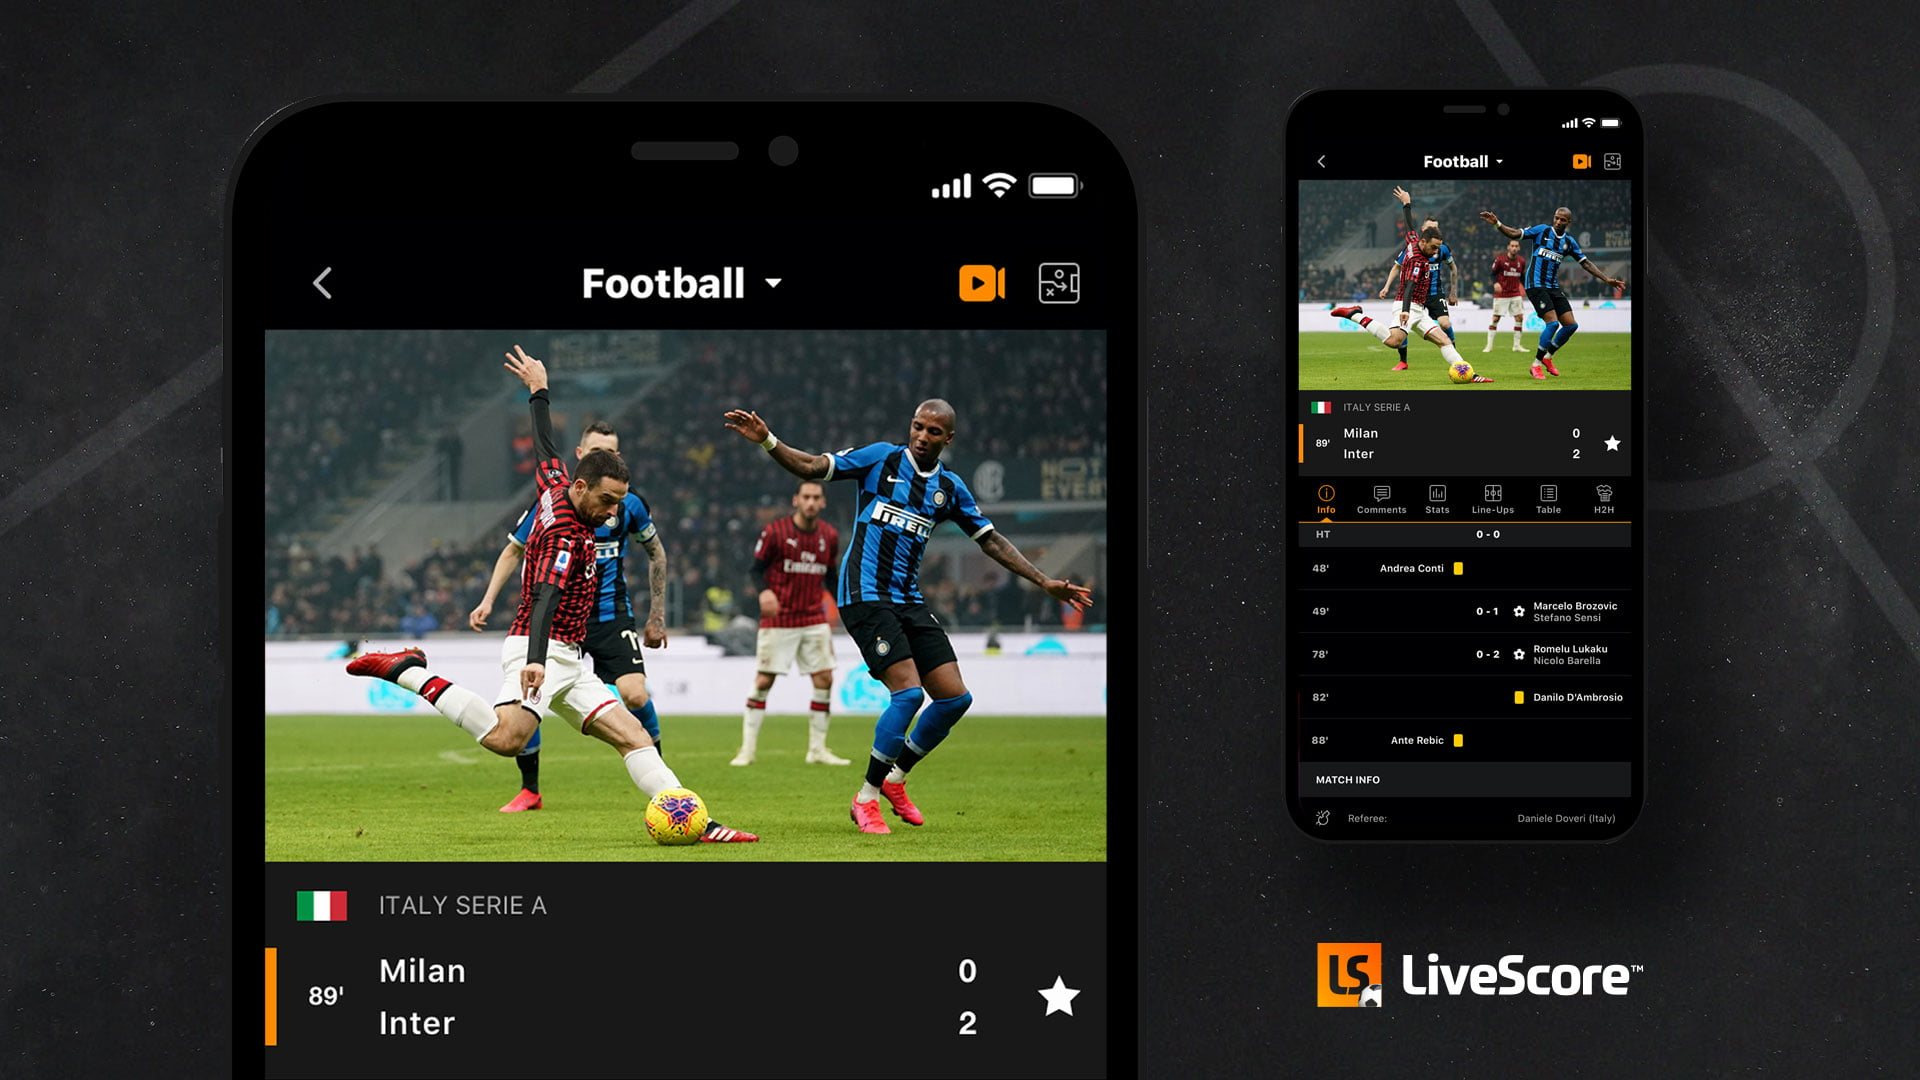 LiveScore To Launch First Streaming Service With Serie A